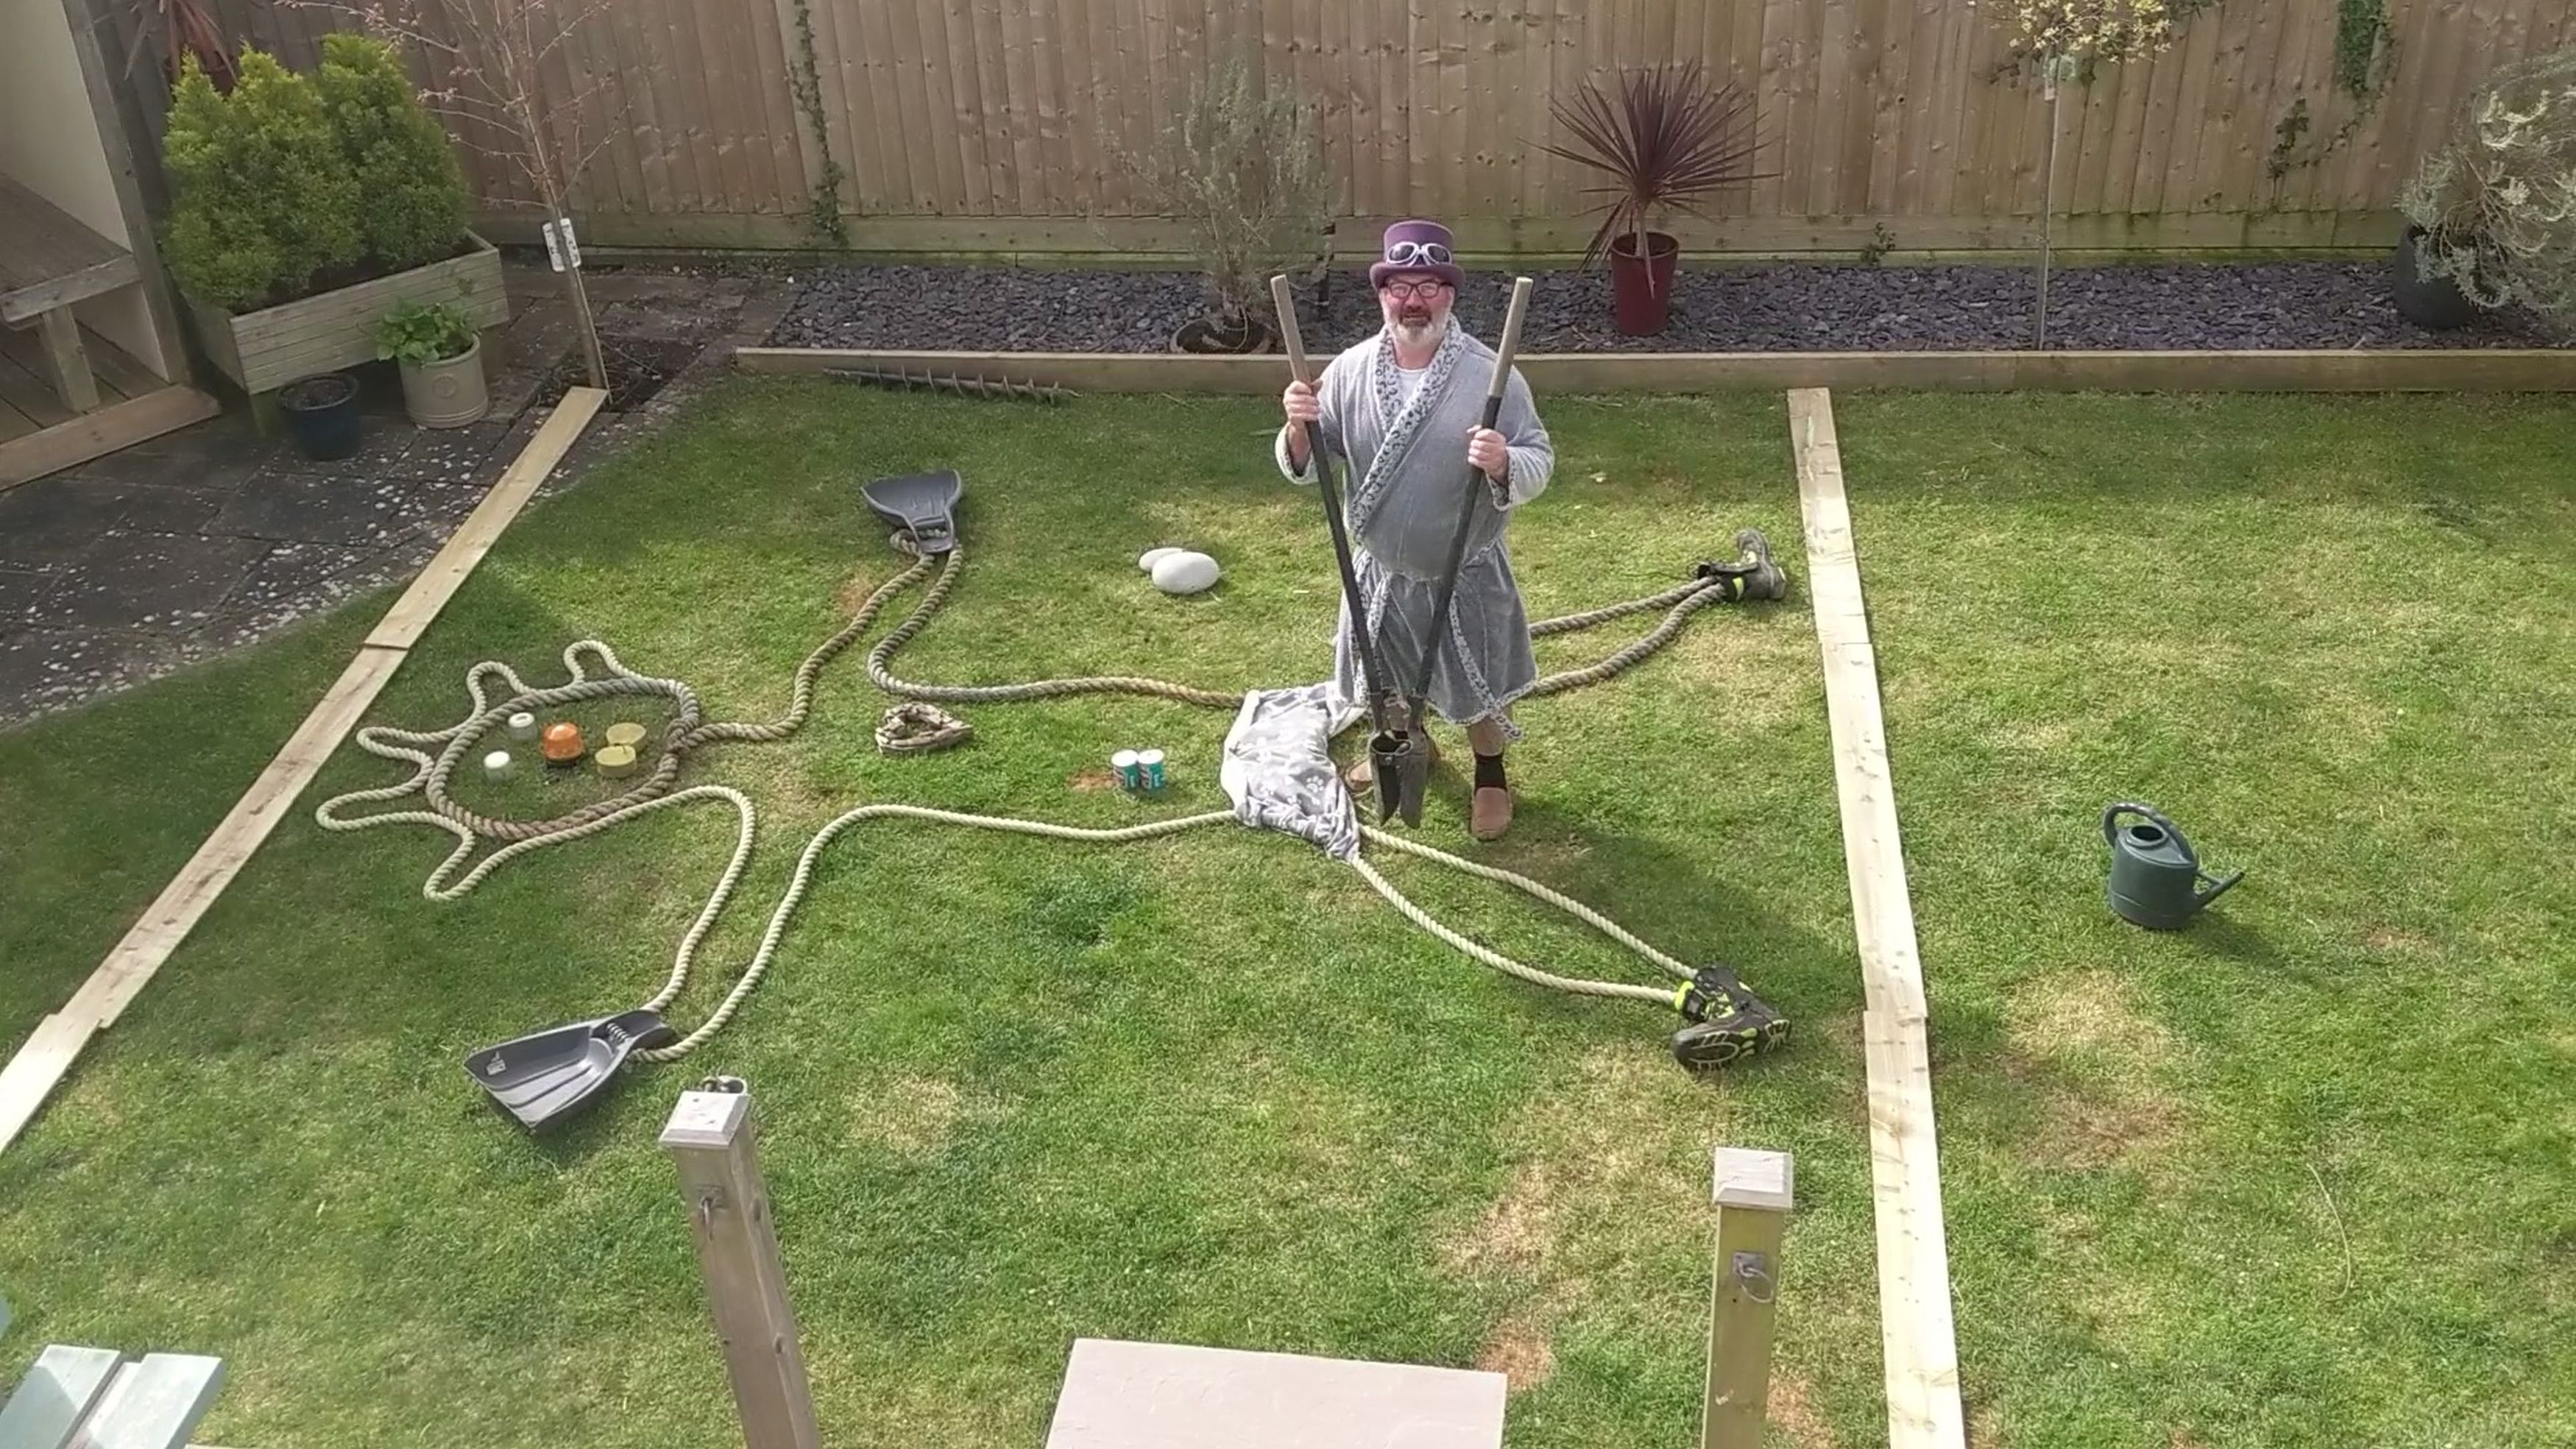 Granddad playing operation in his garden